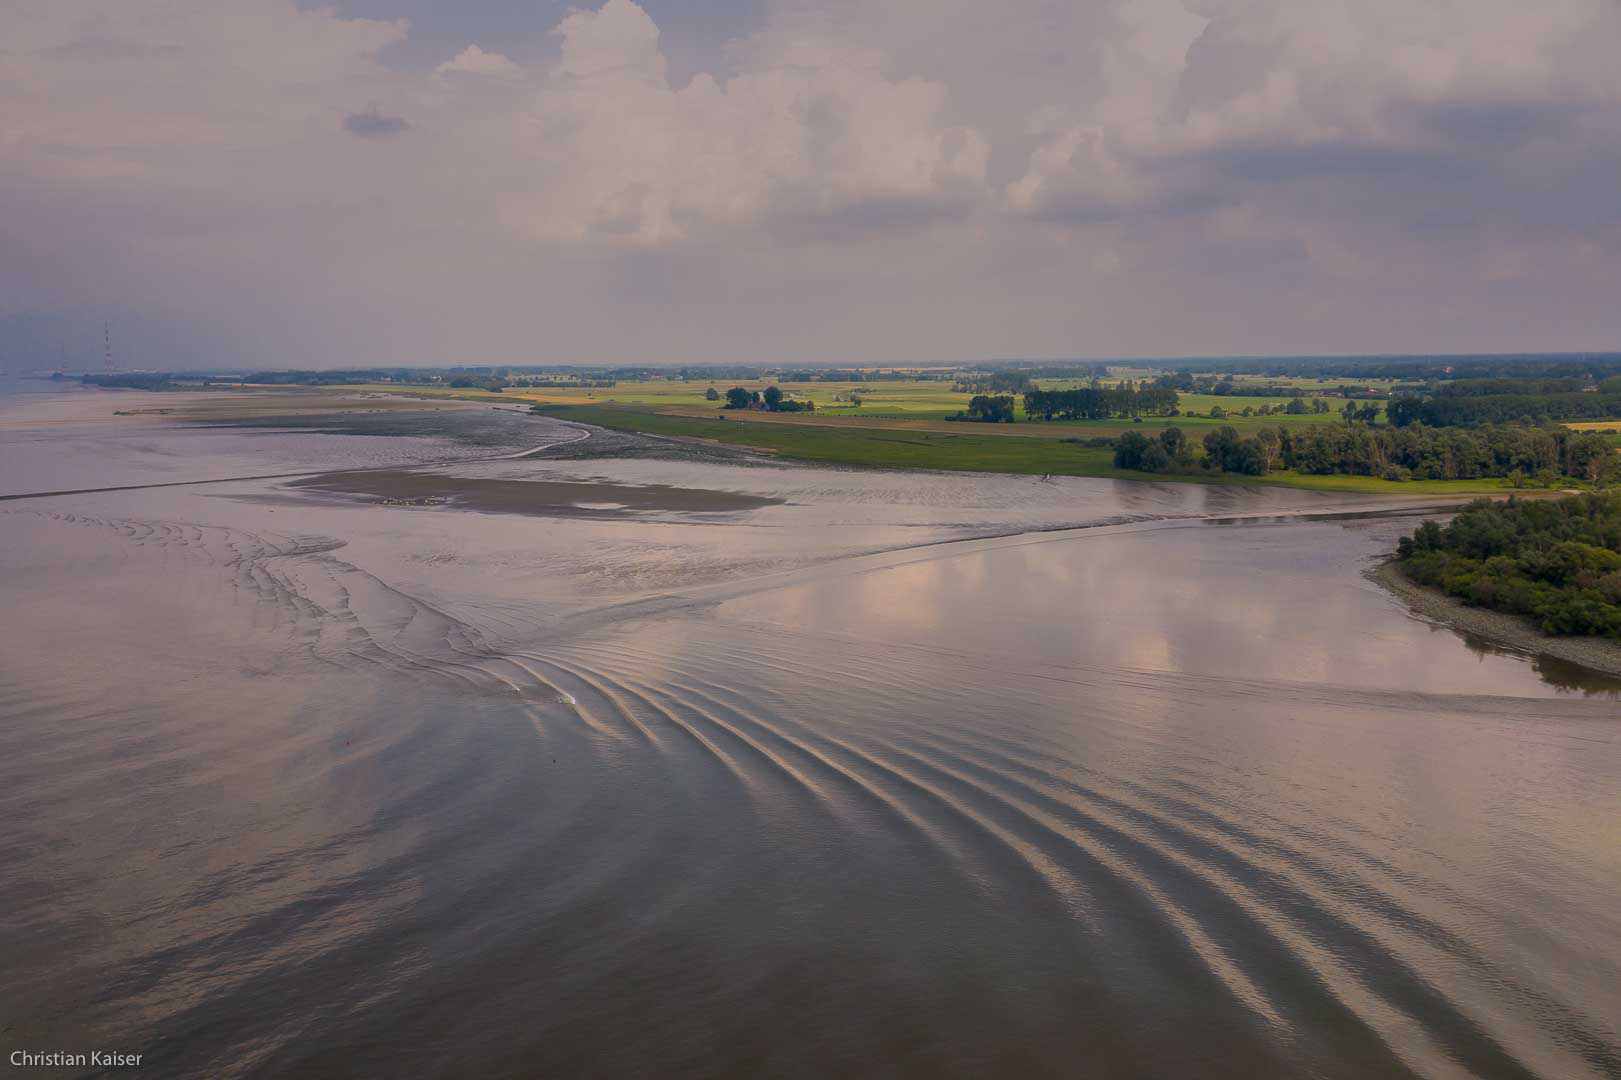 Faehrmannsand, elbe river marshes,